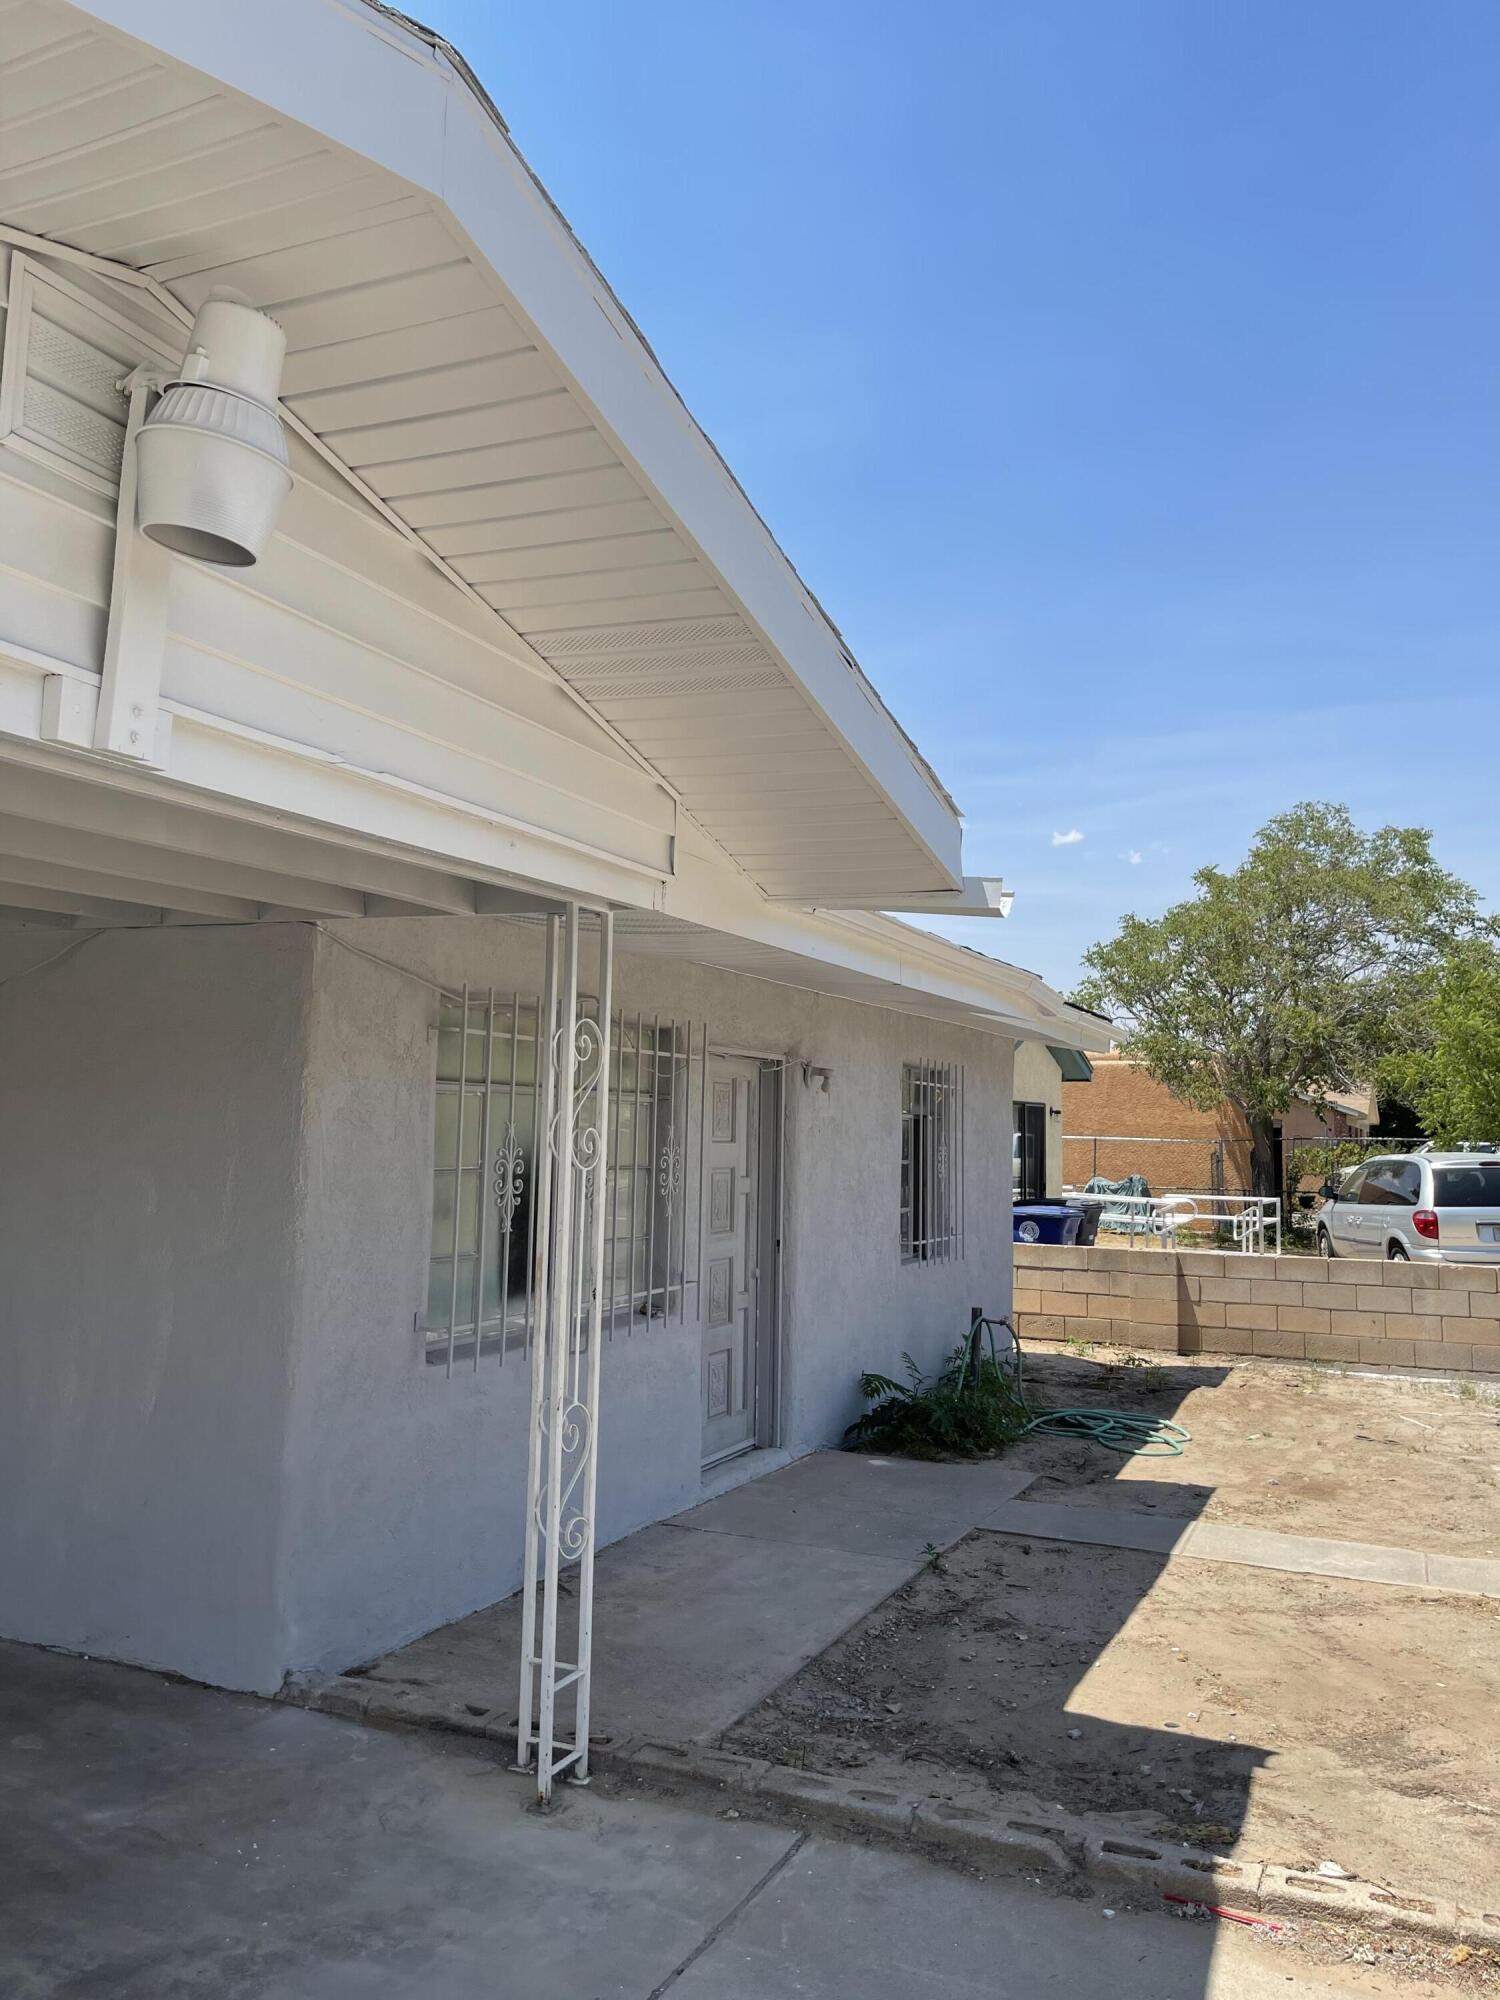 Turn Key, move in ready remodeled single story home in well established neighborhood. Updates include tiled bathrooms, kitchen cabinets, countertops, new carpet in bedrooms, luxury vinyl flooring, roof and more! Spacious backyard with plenty of storage. Stainless steel appliance package.